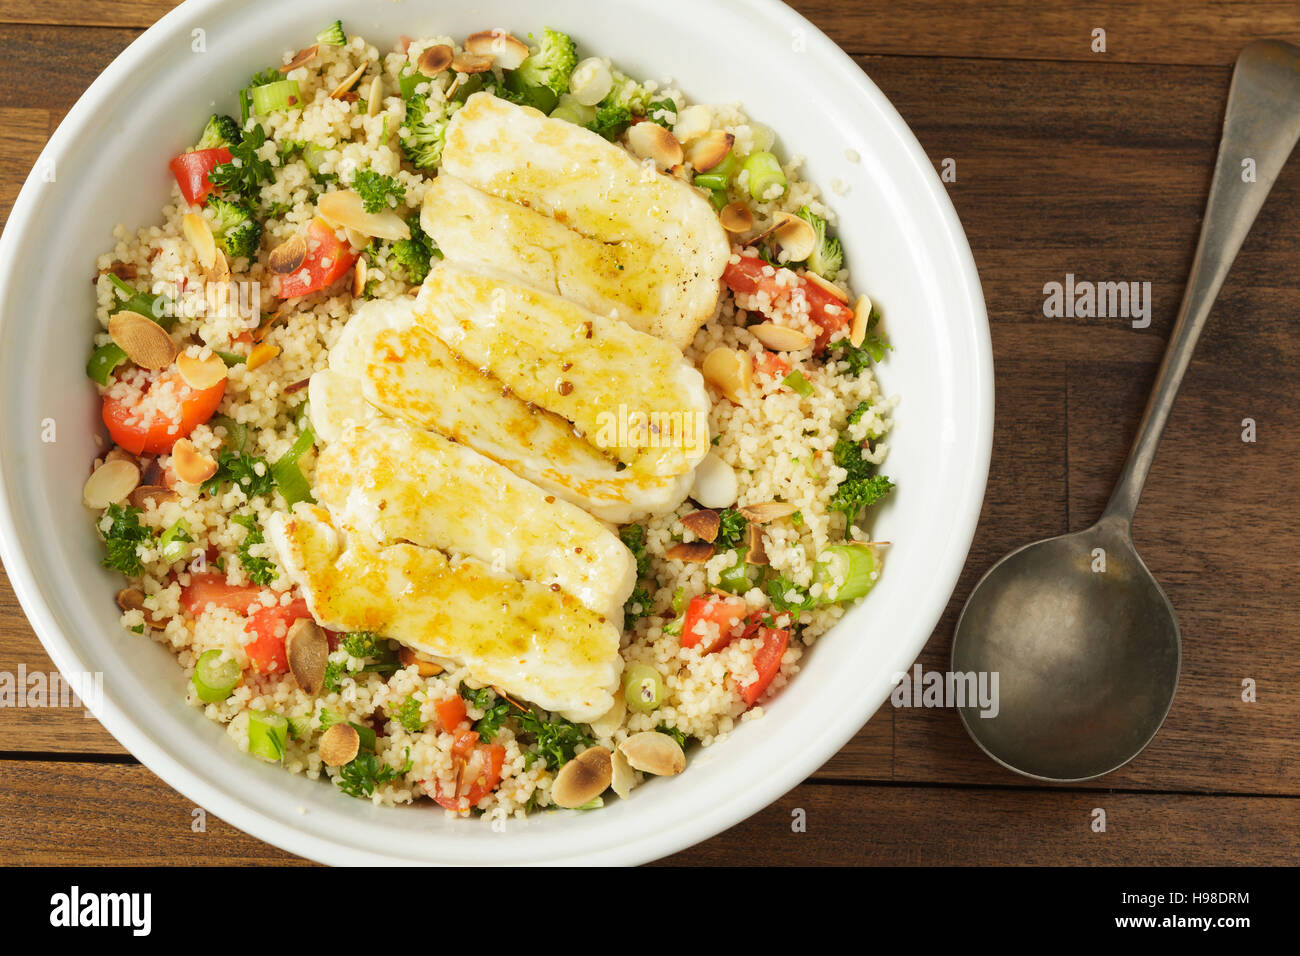 couscous salad with halloumi - Stock Image